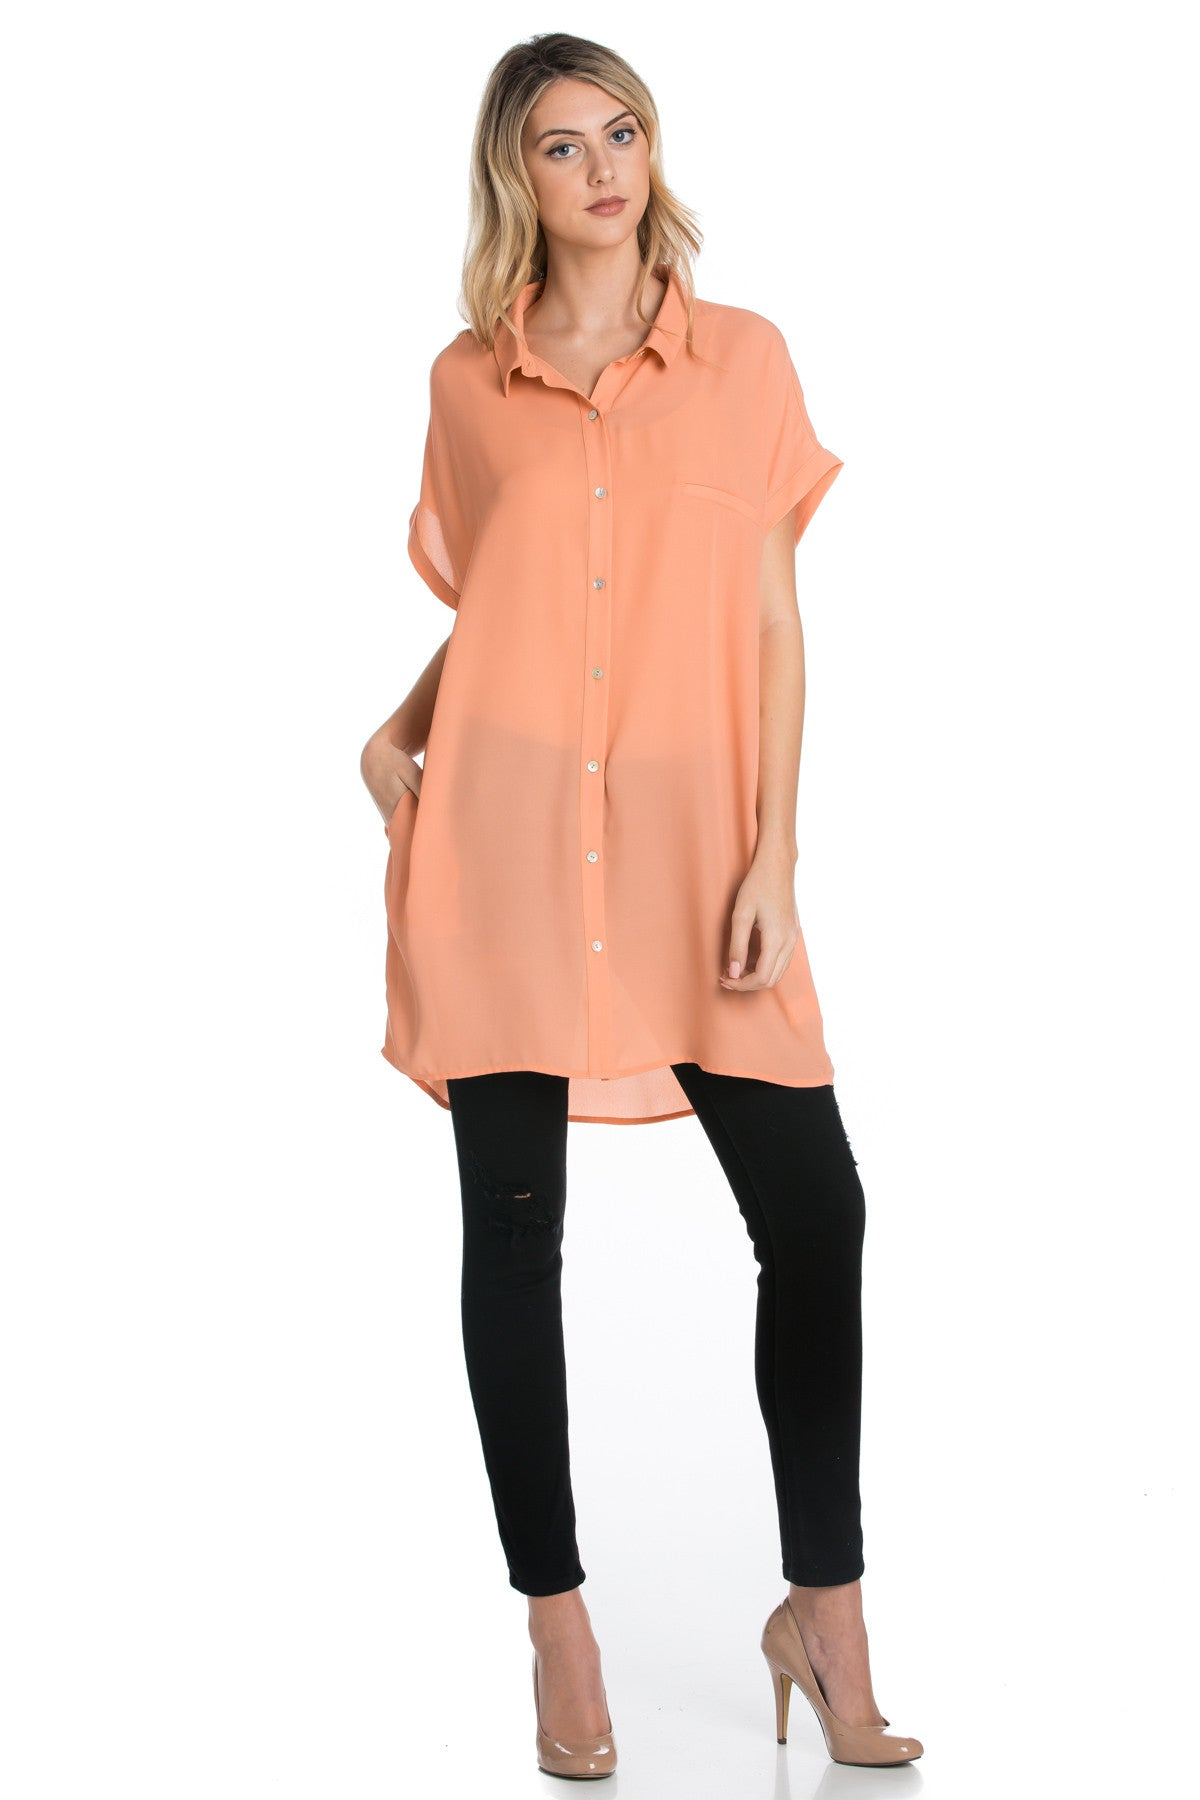 Short Sleeve Longline Button Down Chiffon Top in Coral - Tops - My Yuccie - 11